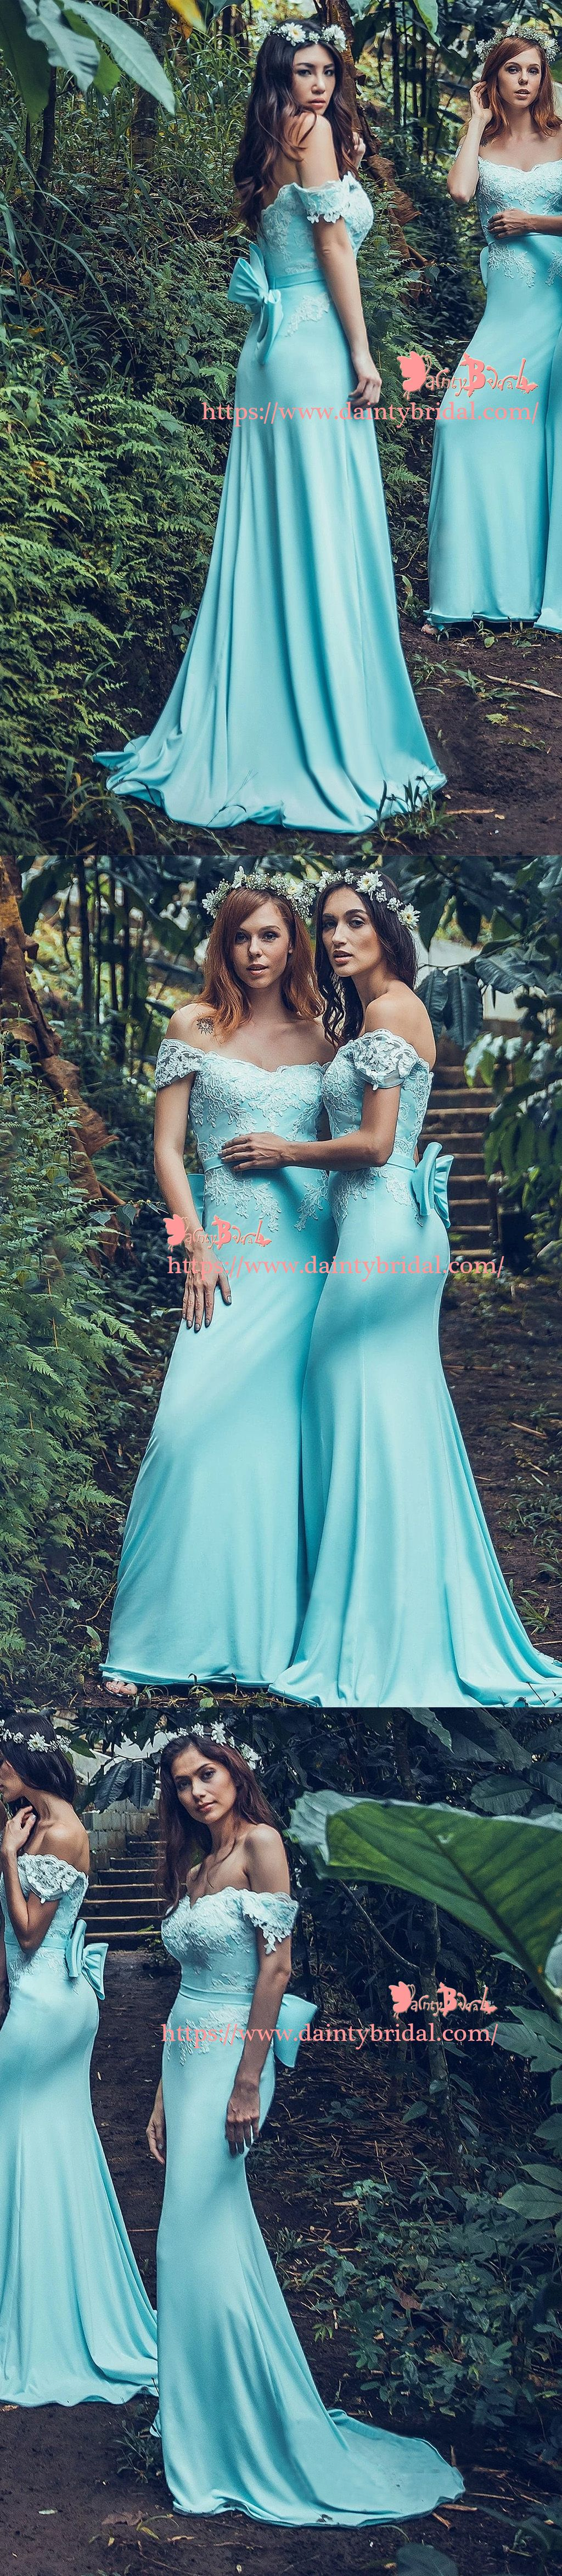 Off shoulder charming blue with bowknot sash lace appliques mermaid